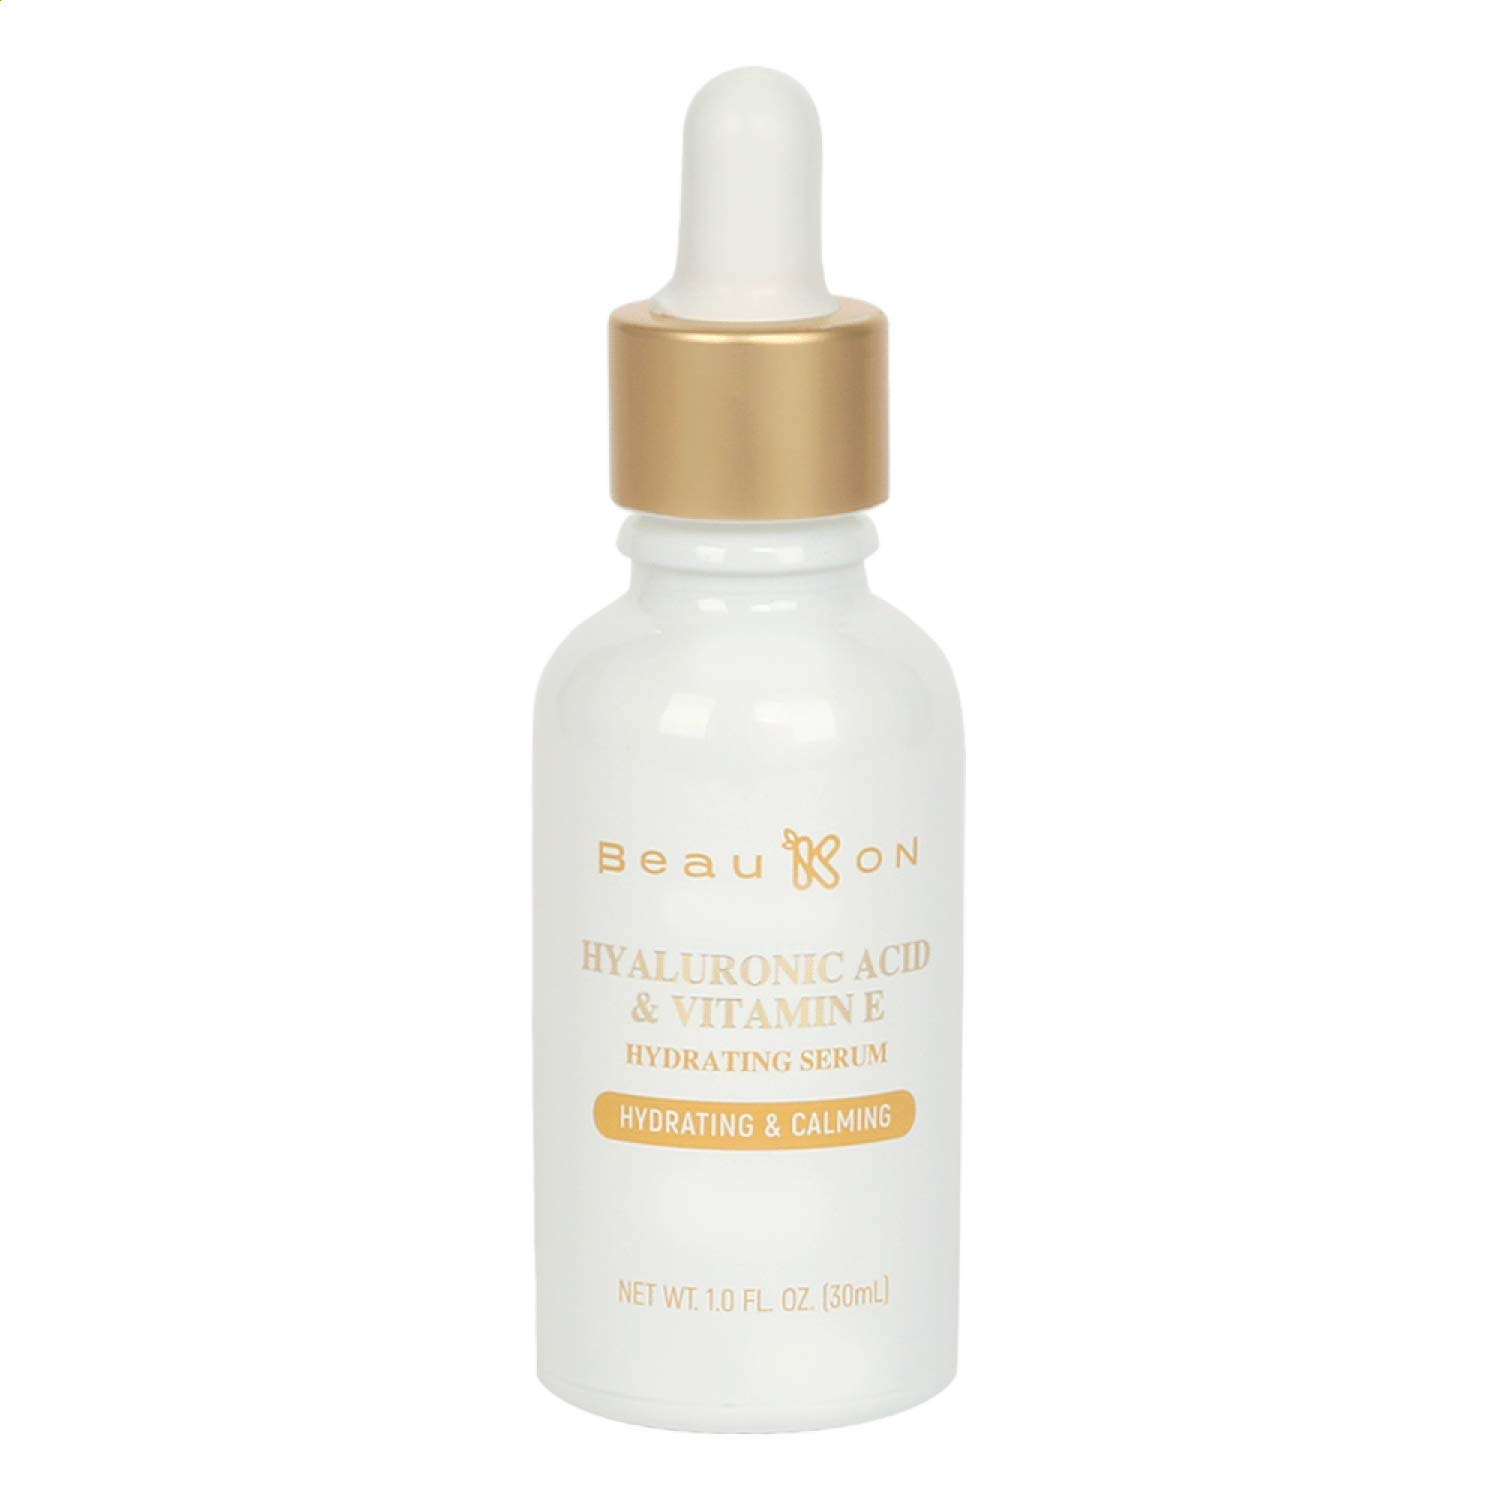 BeauKON Hyaluronic Acid and Vitamin E Hydrating Serum for Face, Hydrating and Calming, Anti Aging Intense Hydration and Moisture for Plump Smooth Skin (1.0 Fl. Oz.)